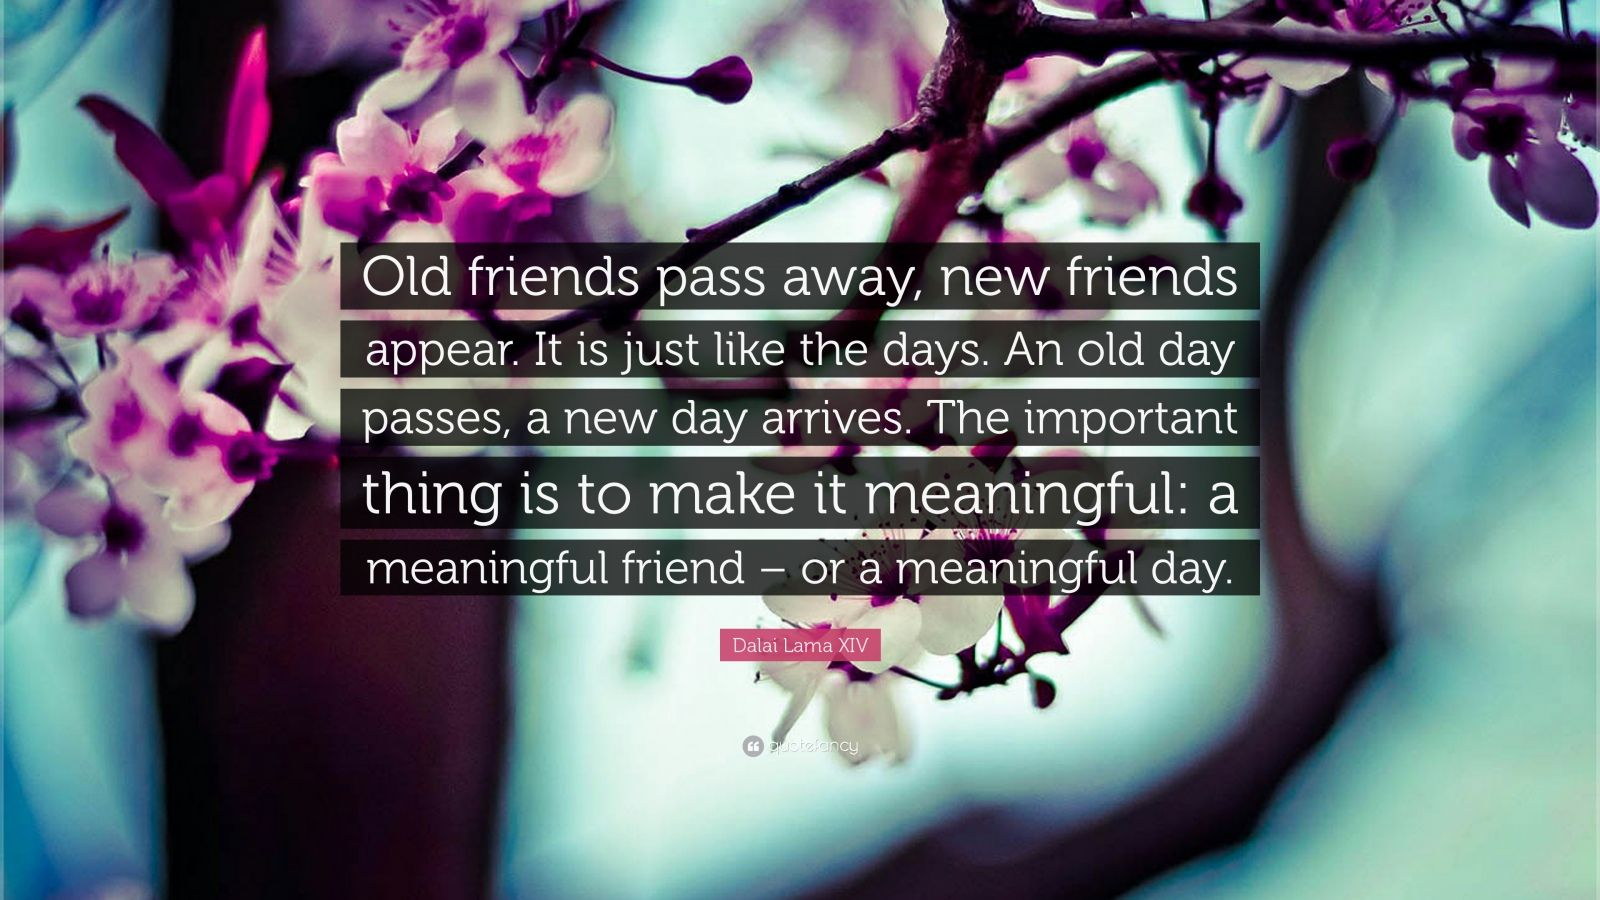 new friends vs old friends essay New friends vs old friends essay friendship is one of the most important relationships of people in their daily lives it's certainly a blessing if you have a lot of friends in your life.